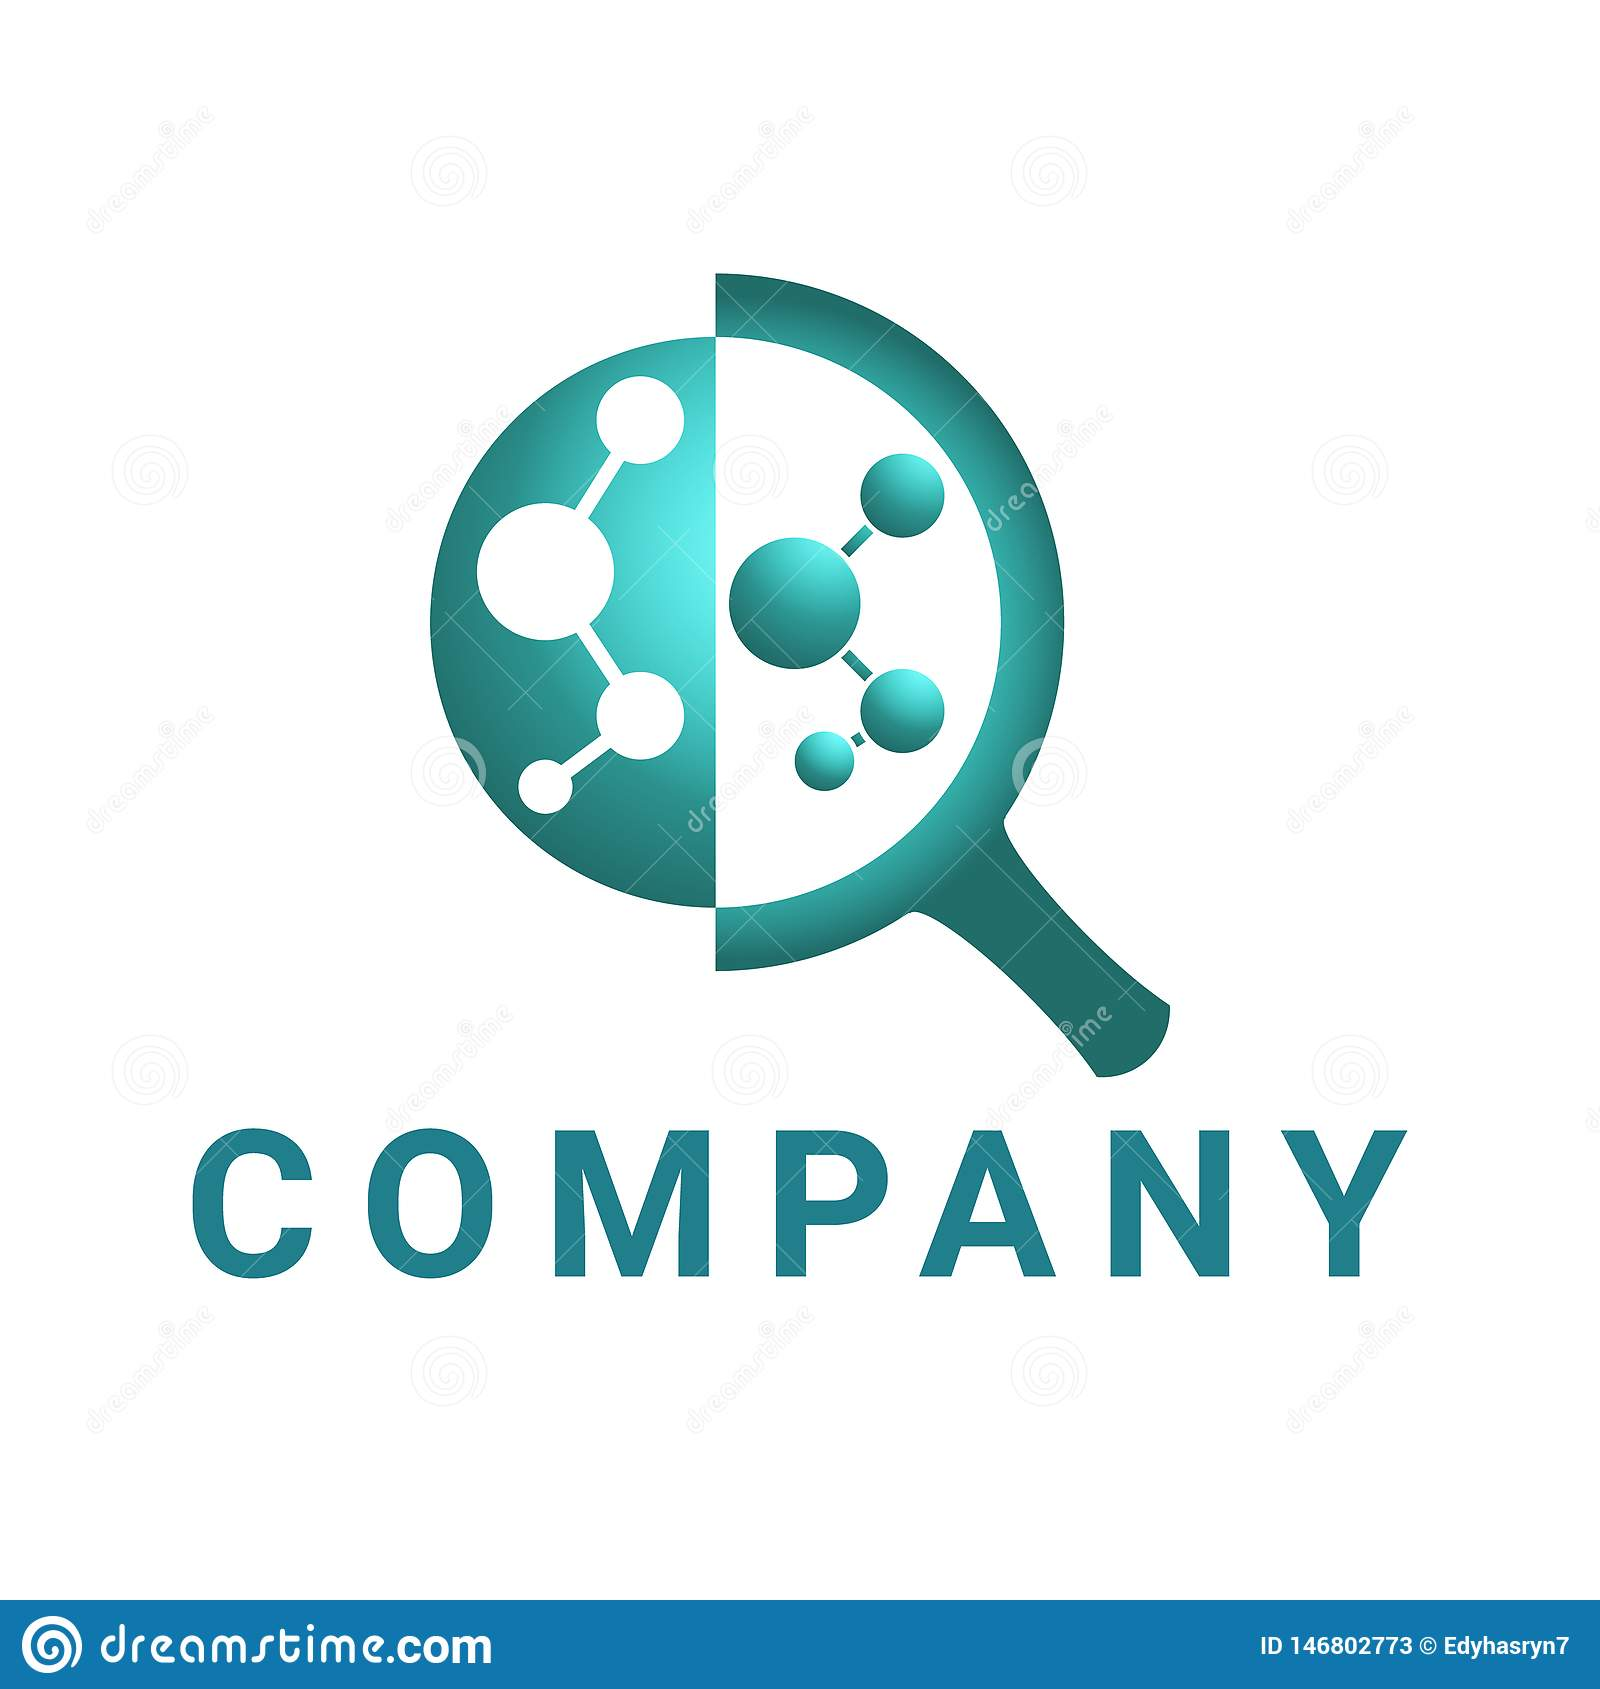 Magnifying glass logo, abstract circle connected in glass, dark green